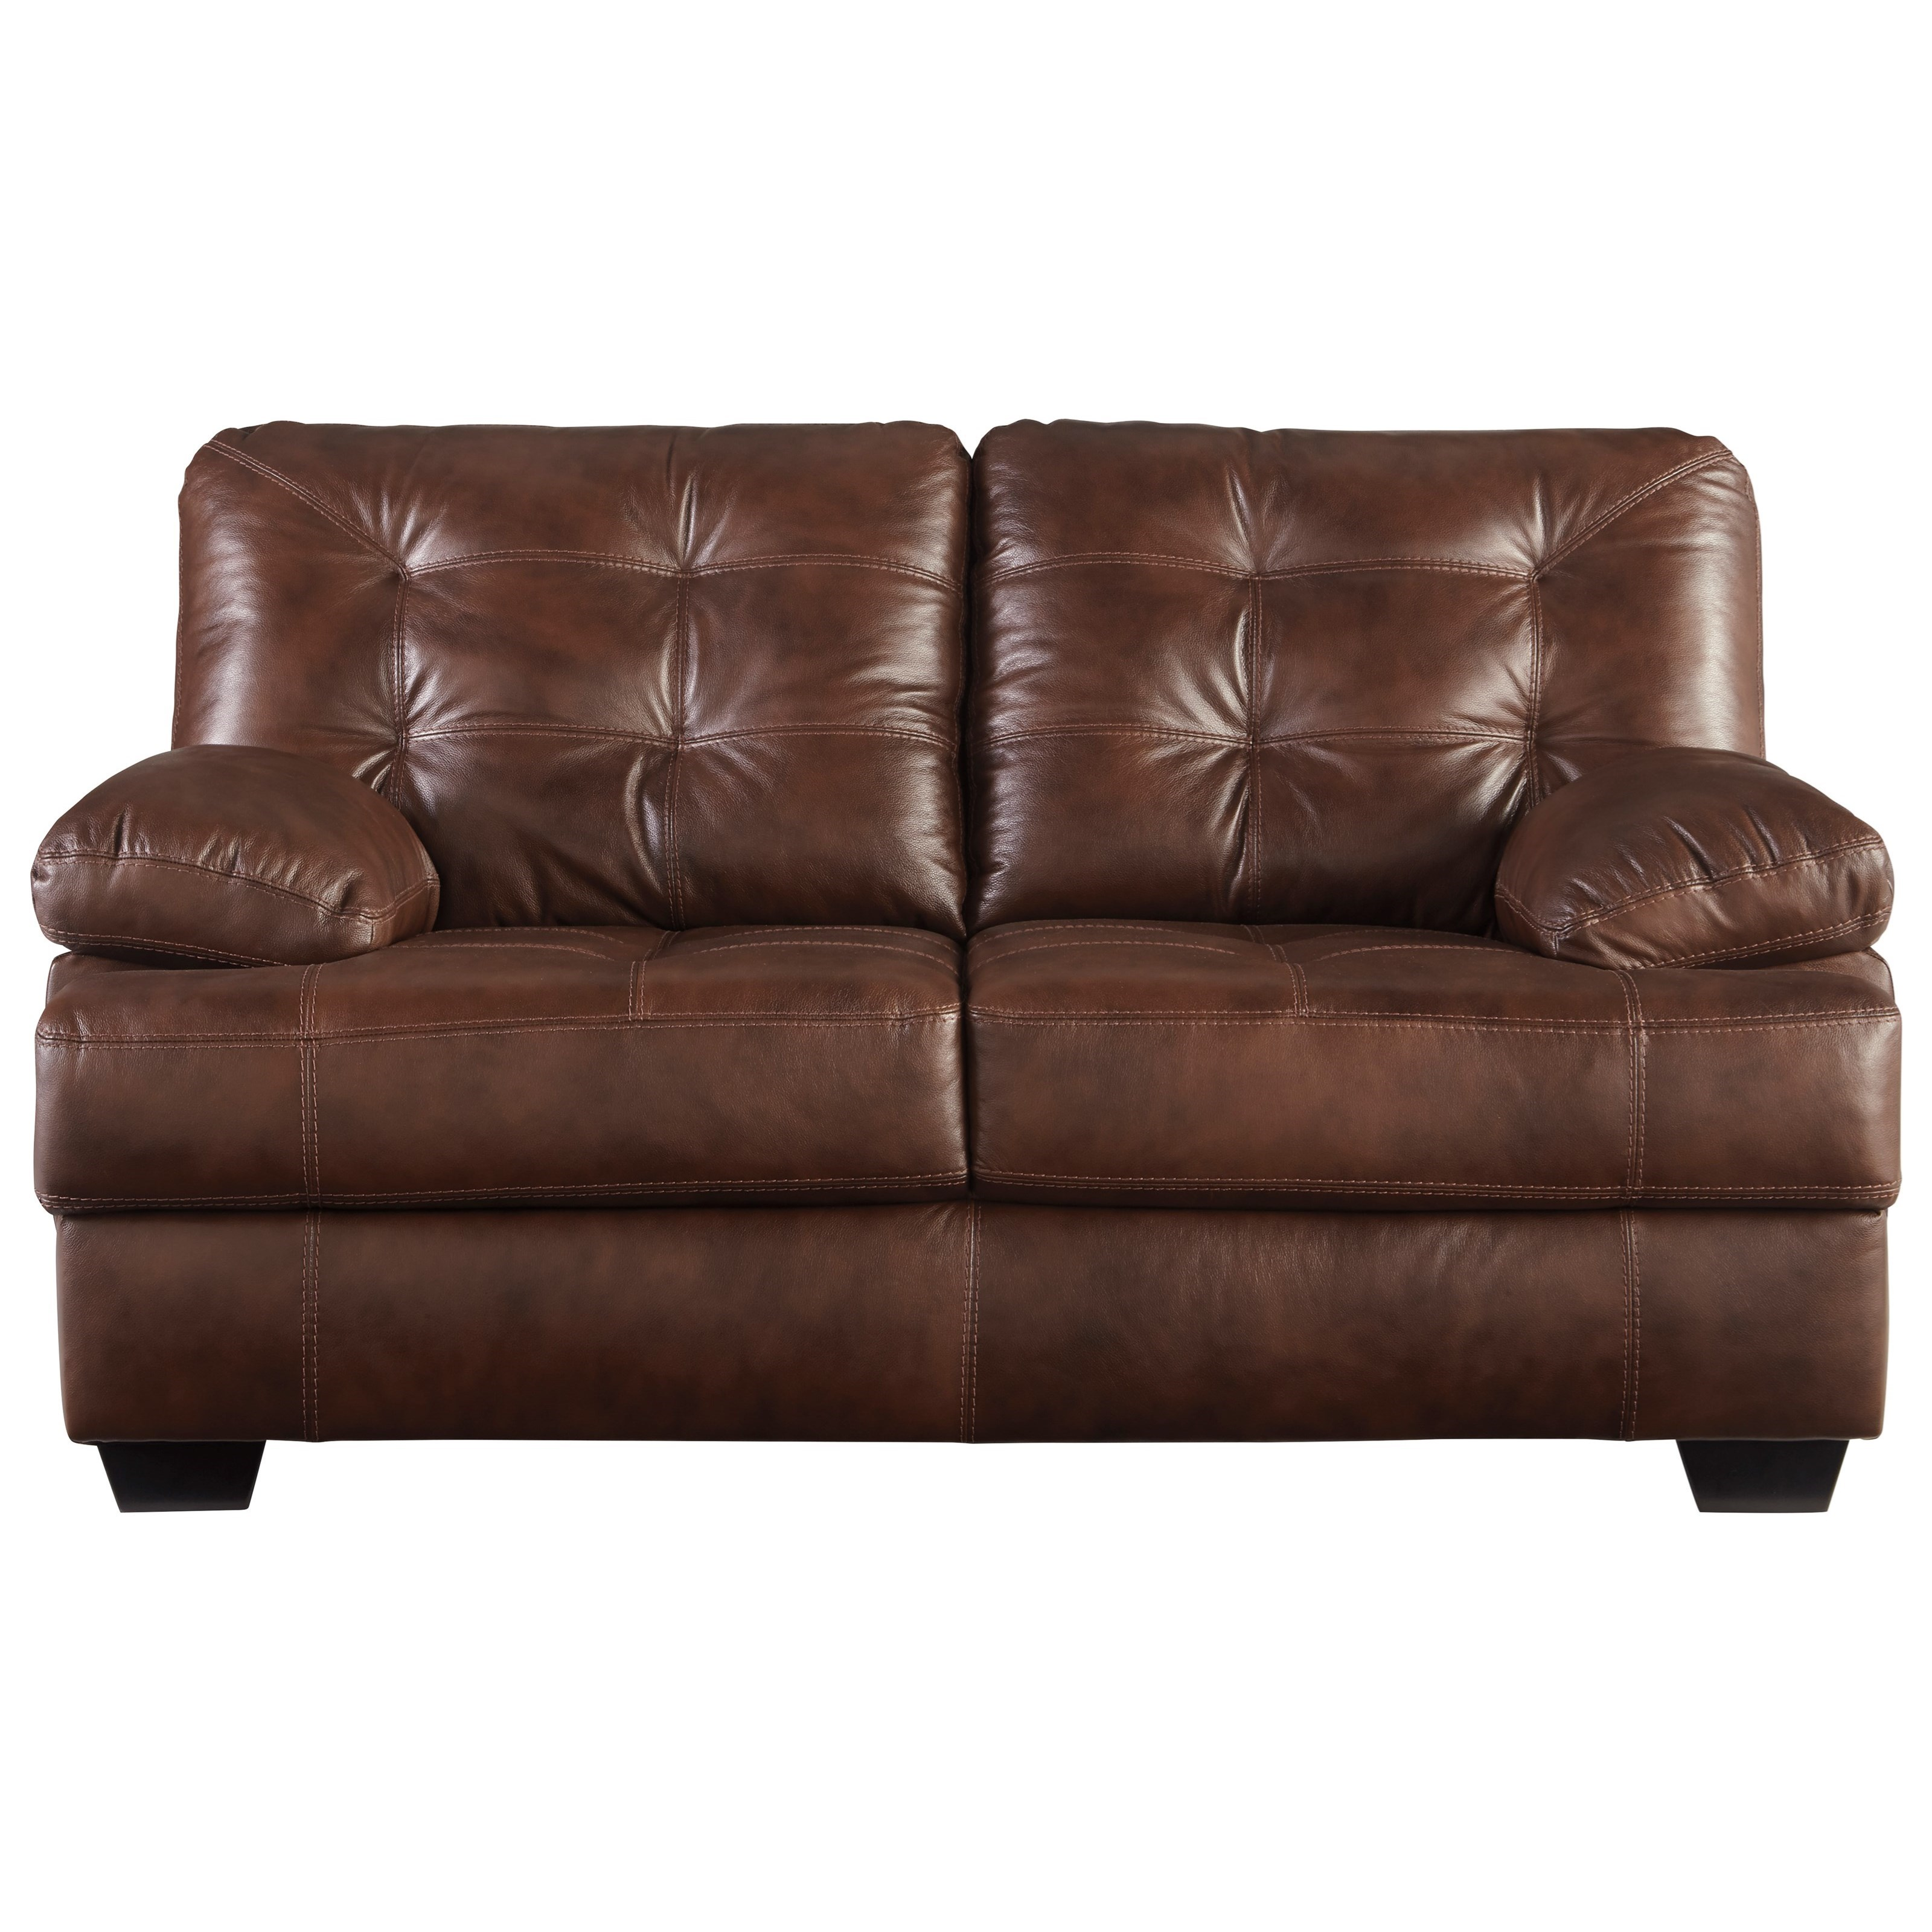 Signature Design by Ashley Mindaro Leather Match Loveseat with